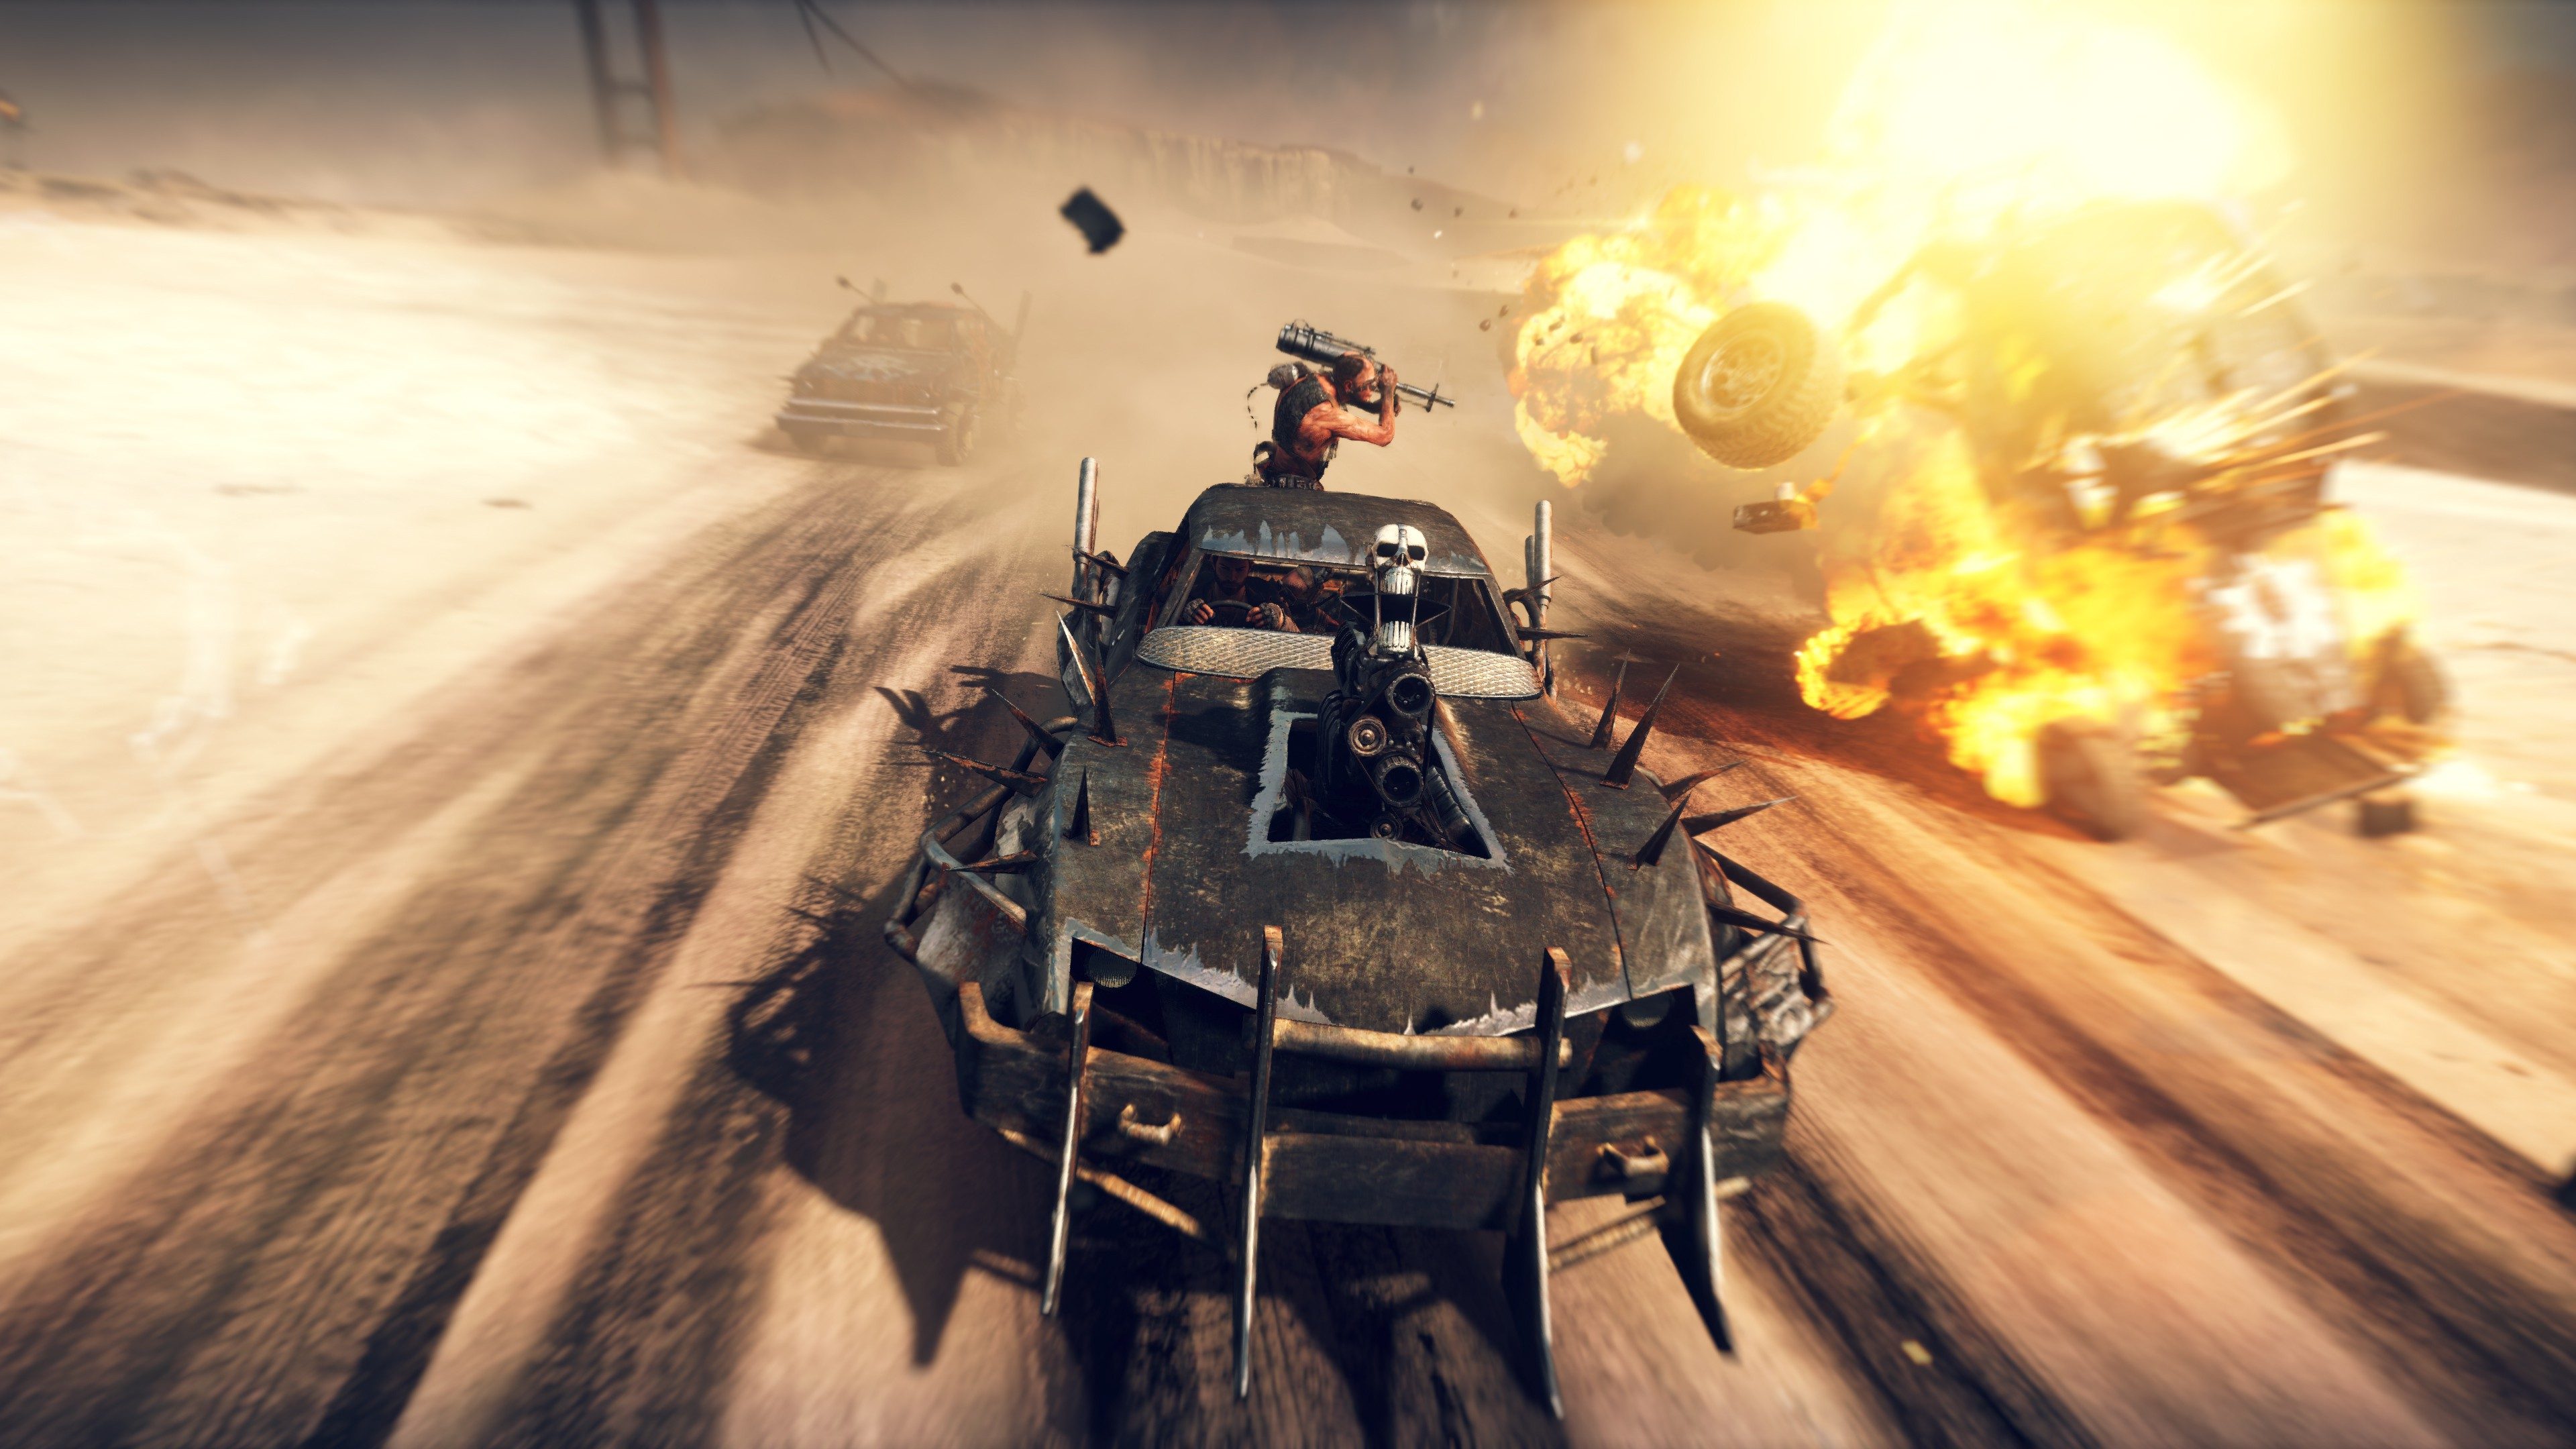 Wallpaper Mad Max Best Games 2015 game shooter PC PS4 Xbox 3840x2160